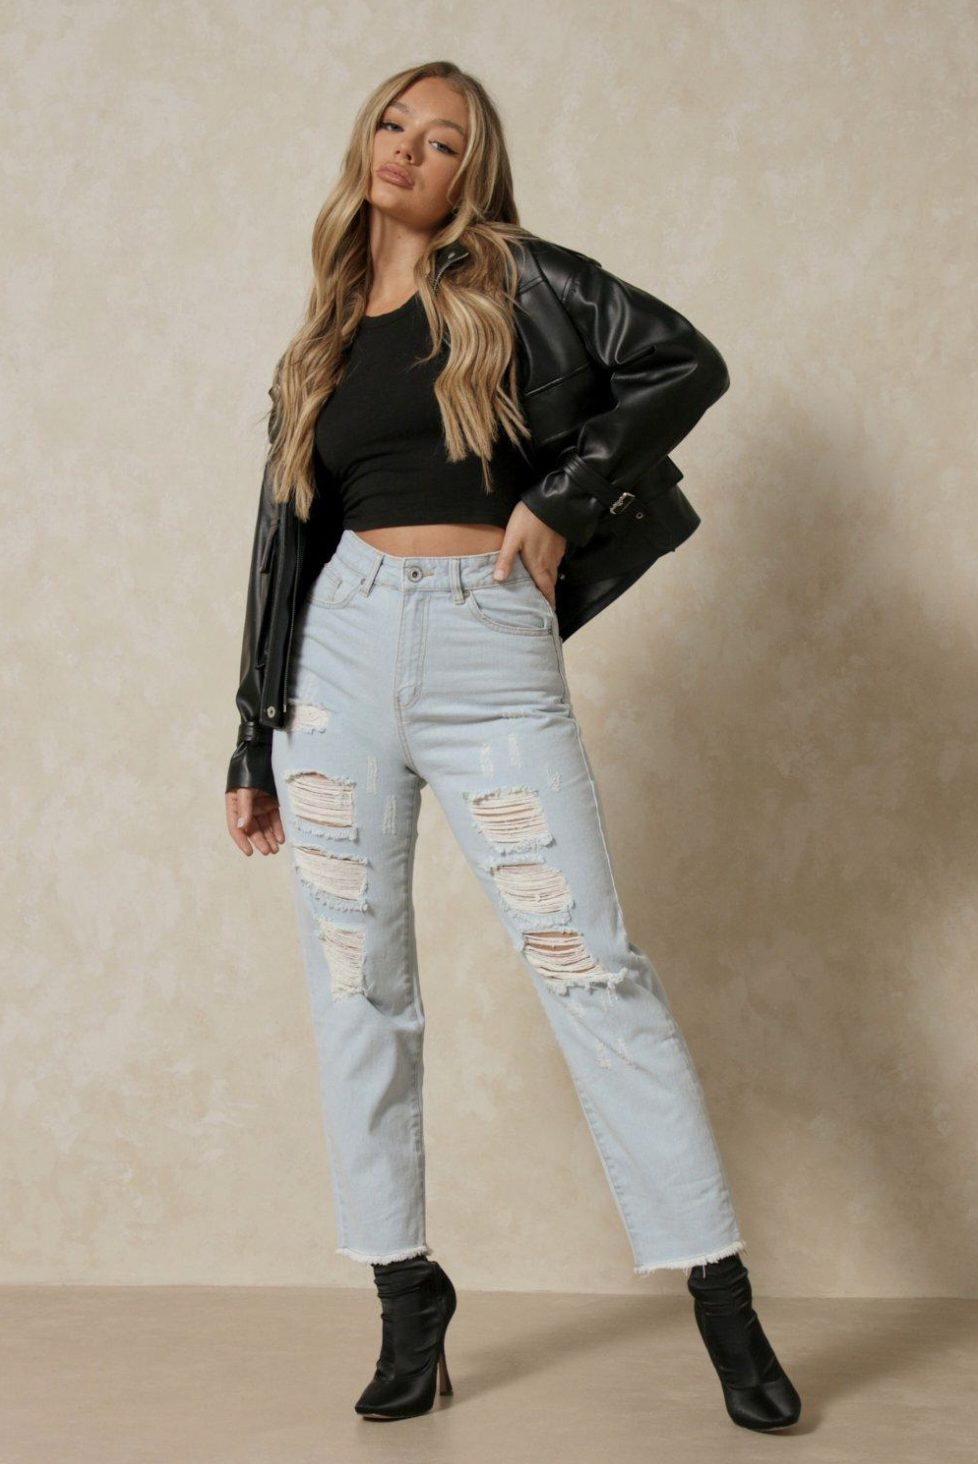 Slightly torn mom jeans with a black leather jacket